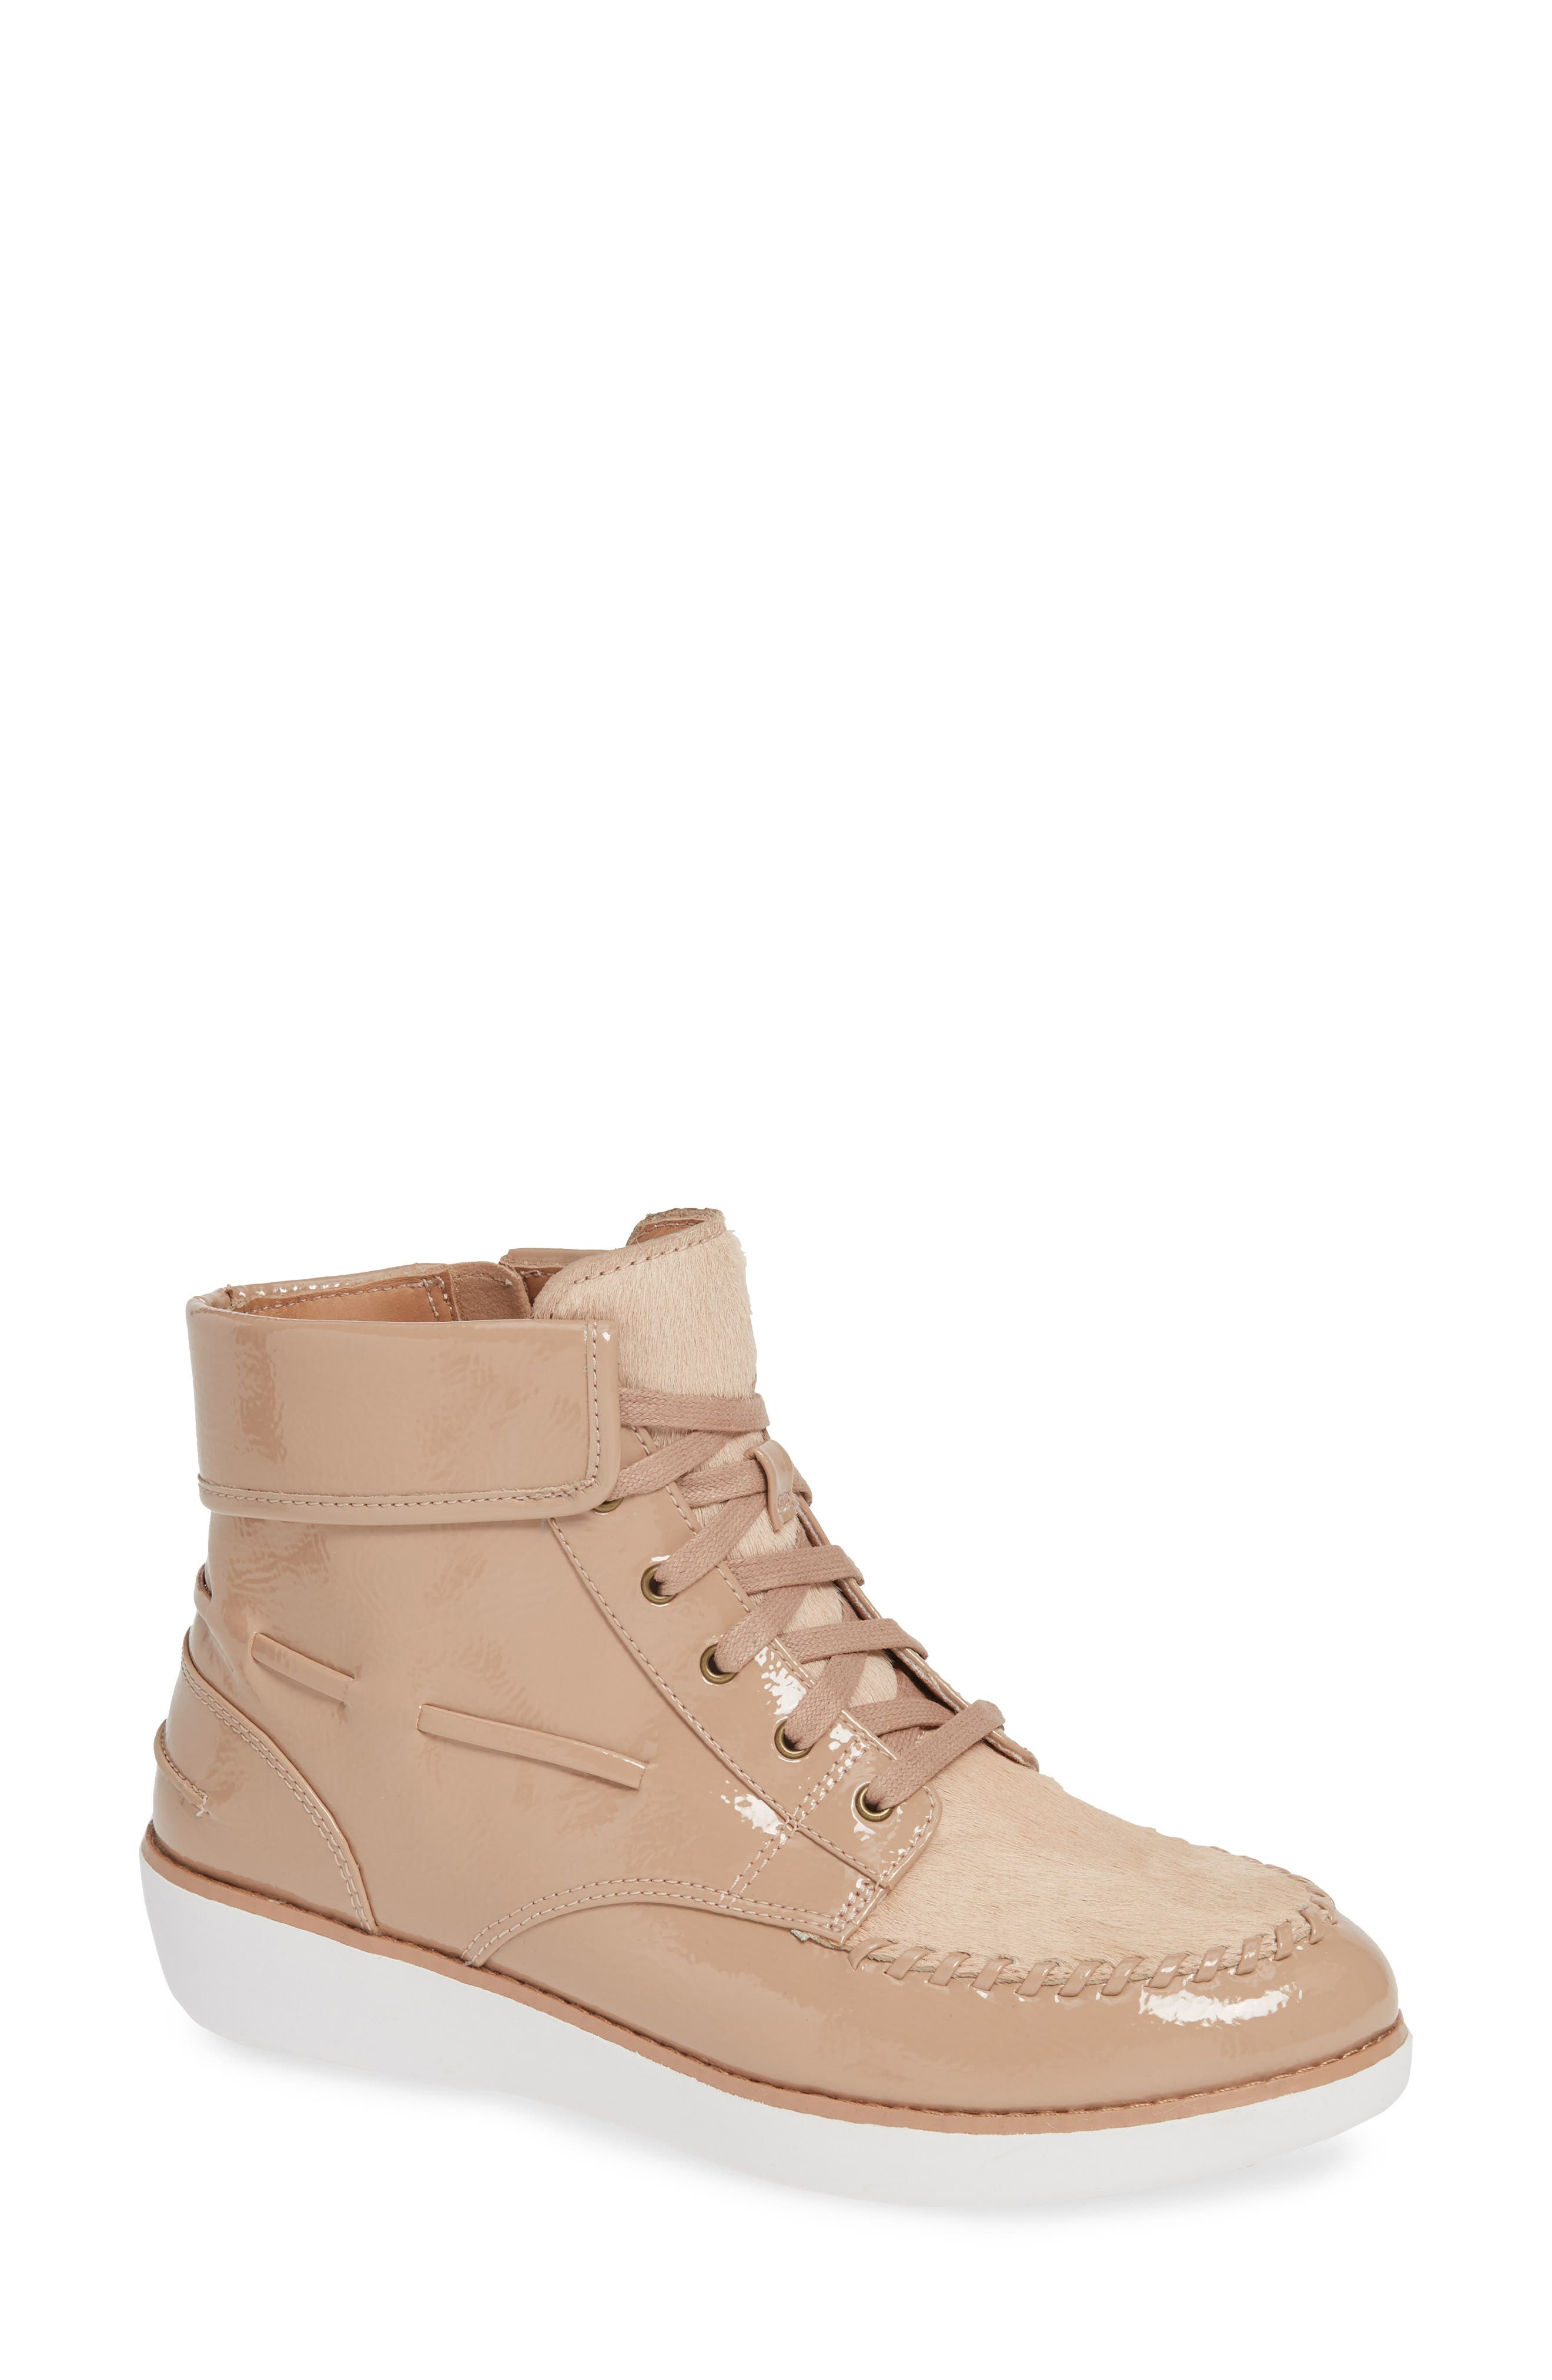 Fitflop Gianni Lace-Up Bootie, Beige